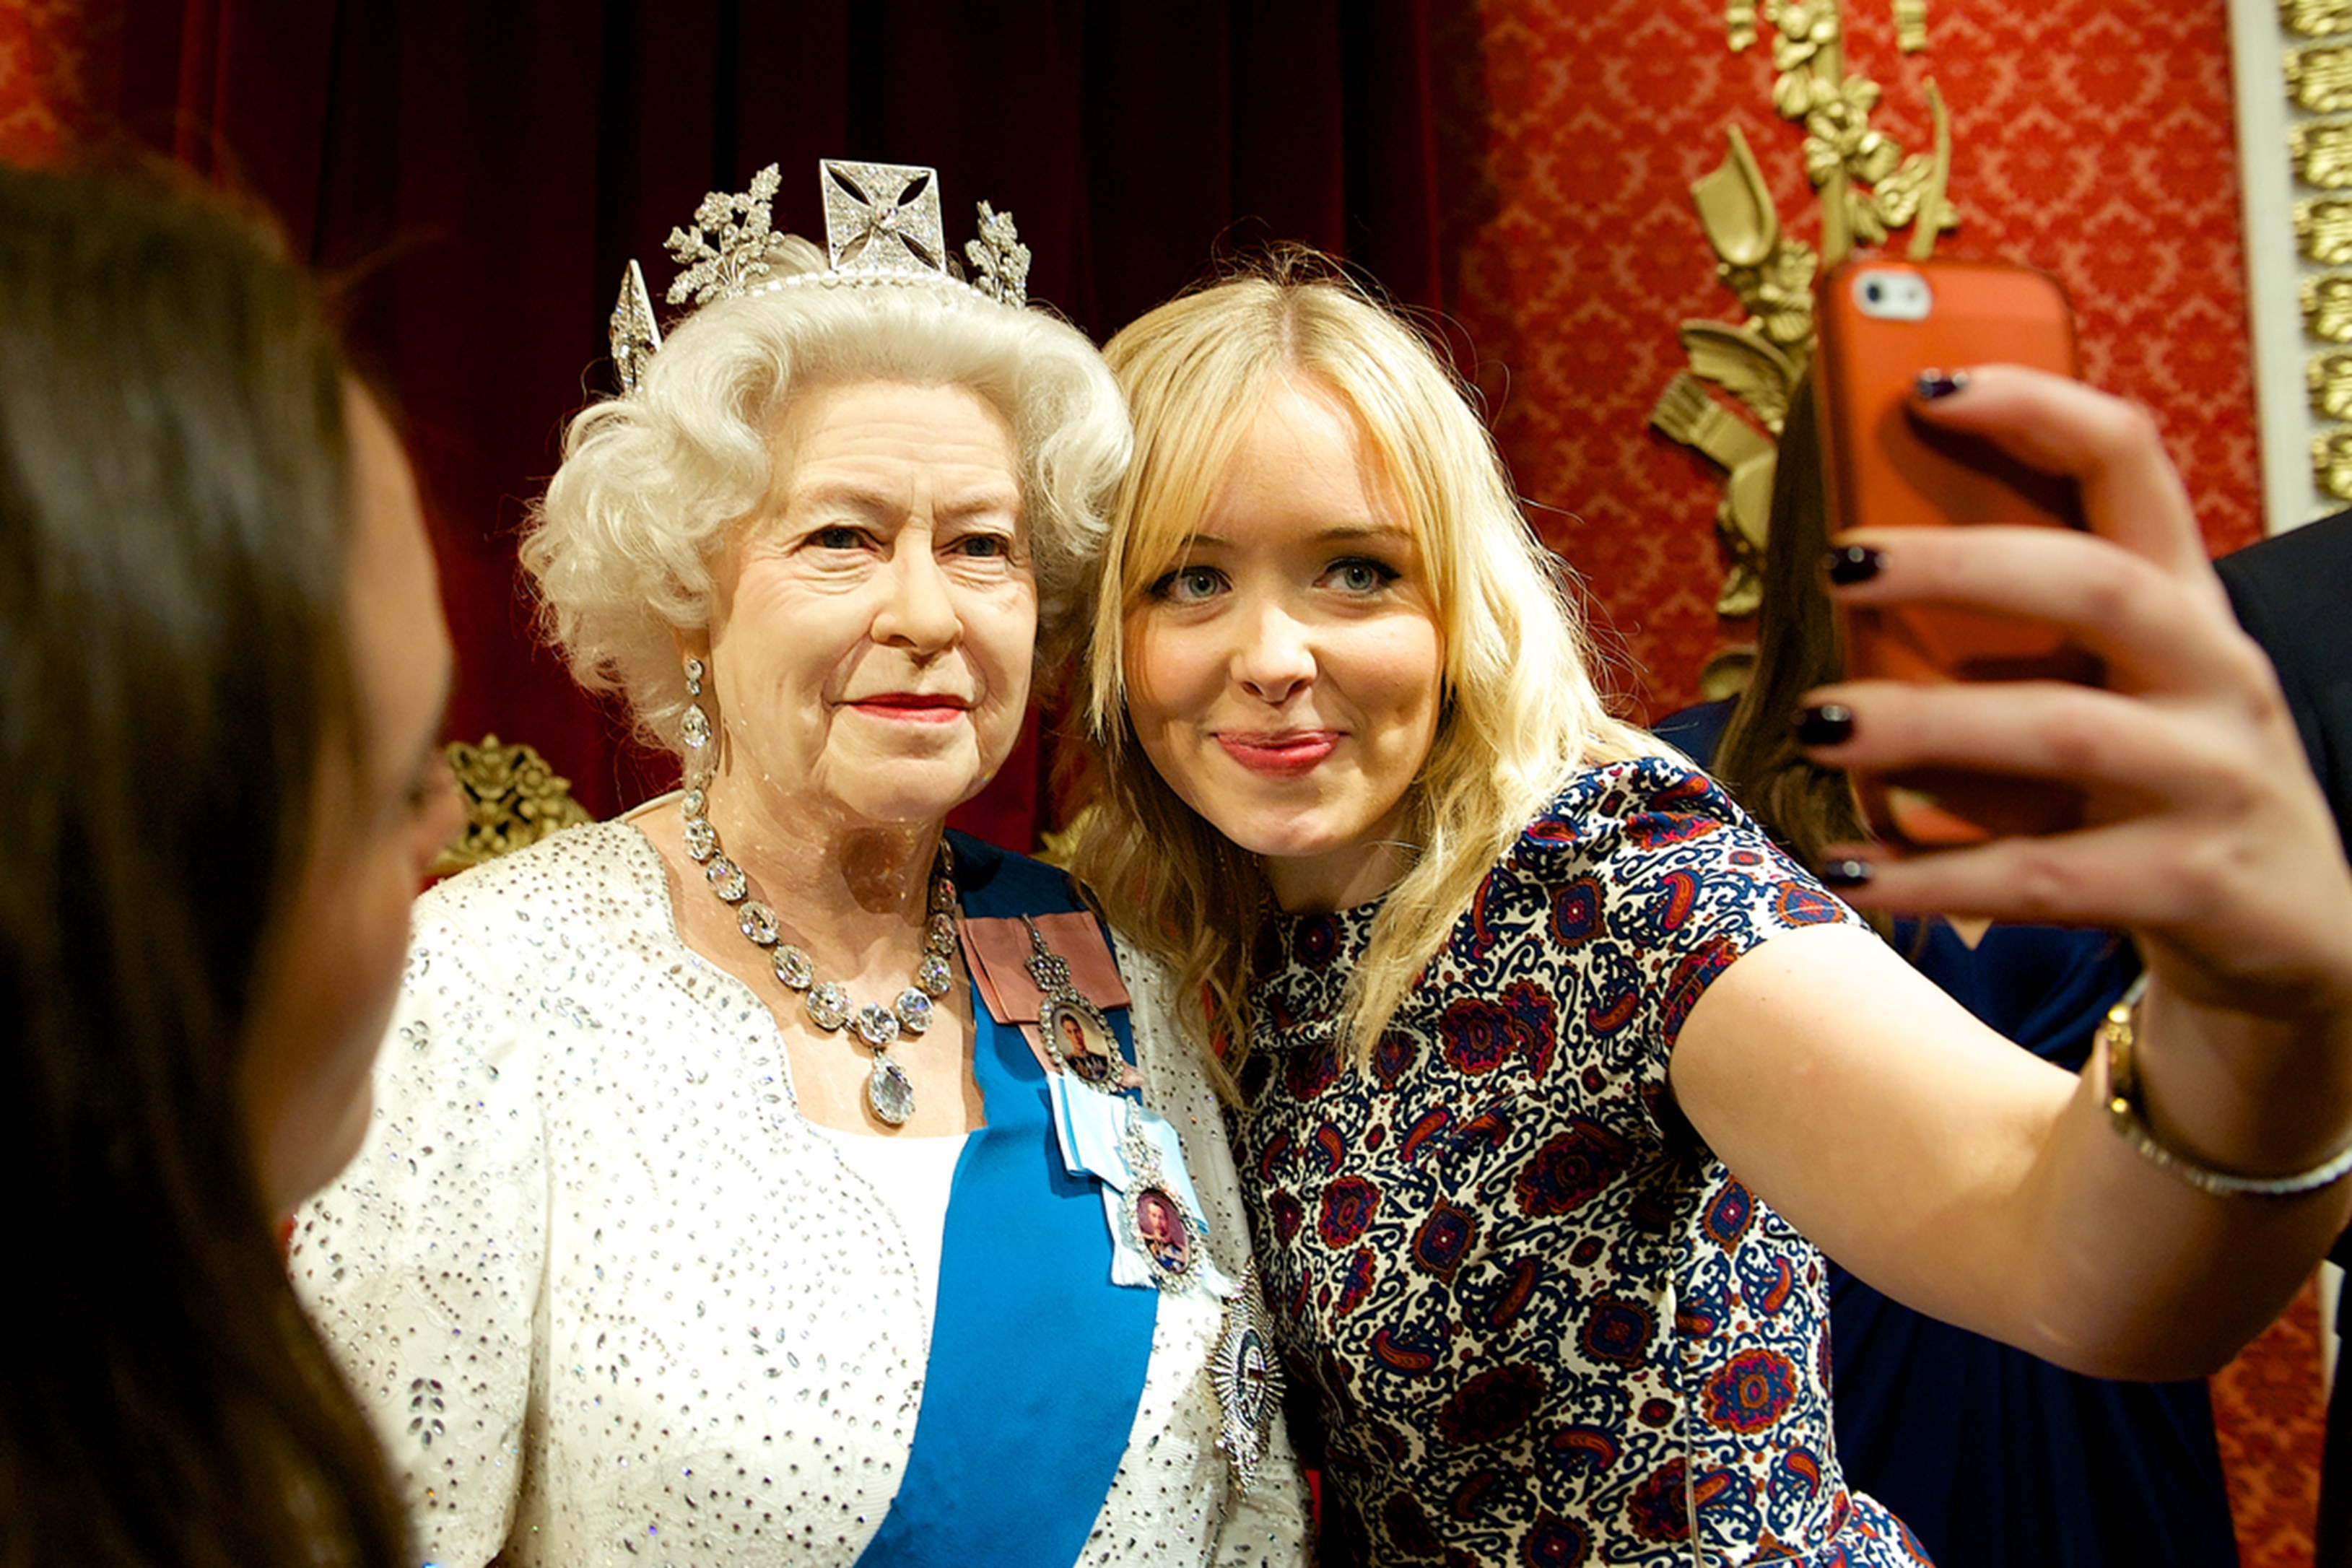 Woman taking selfie with the Queen